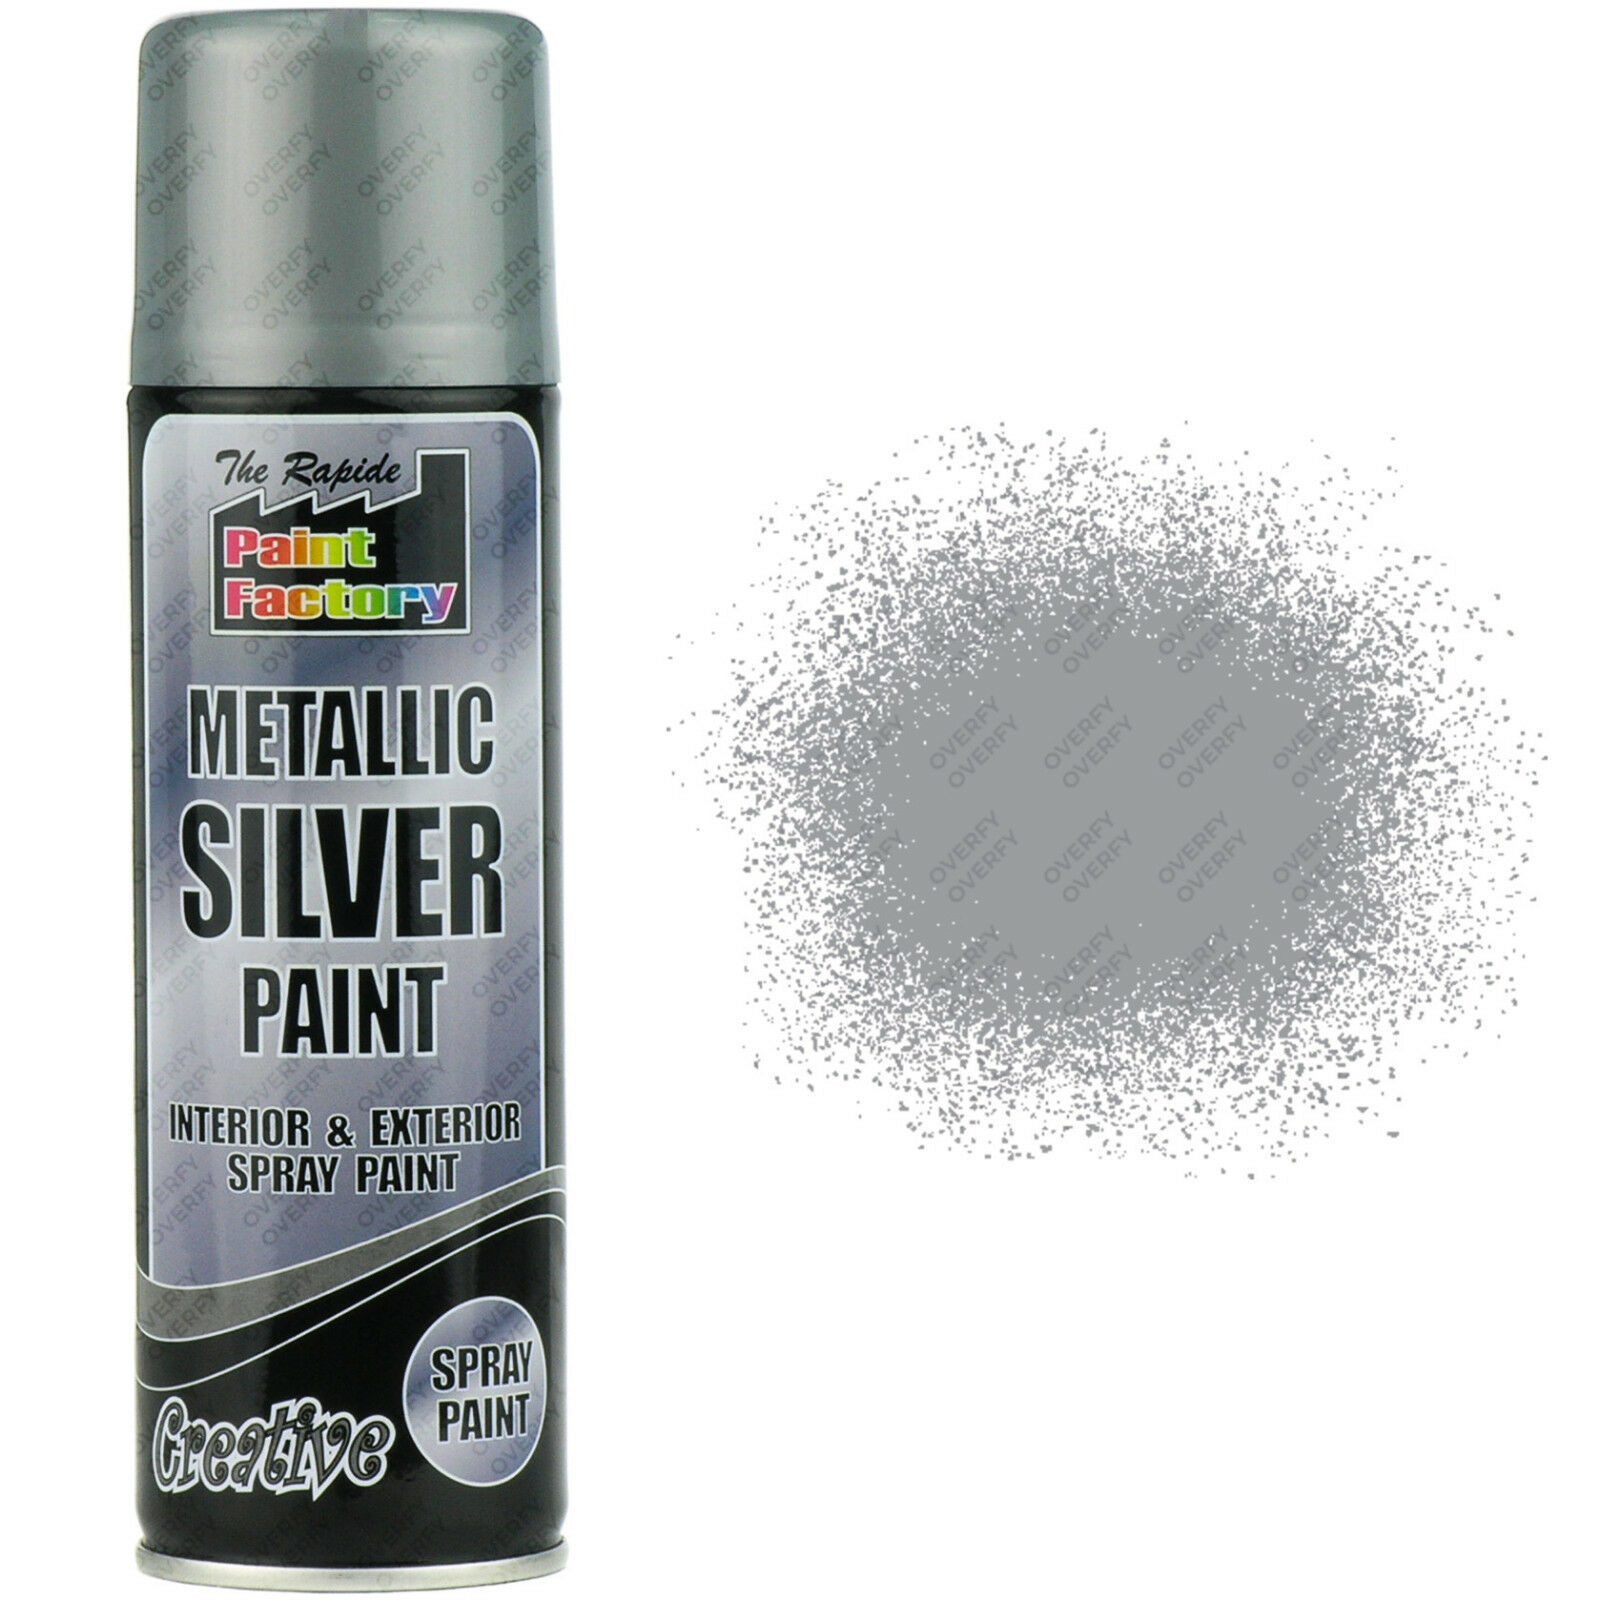 5 x metallic silver spray paint interior exterior spray. Black Bedroom Furniture Sets. Home Design Ideas